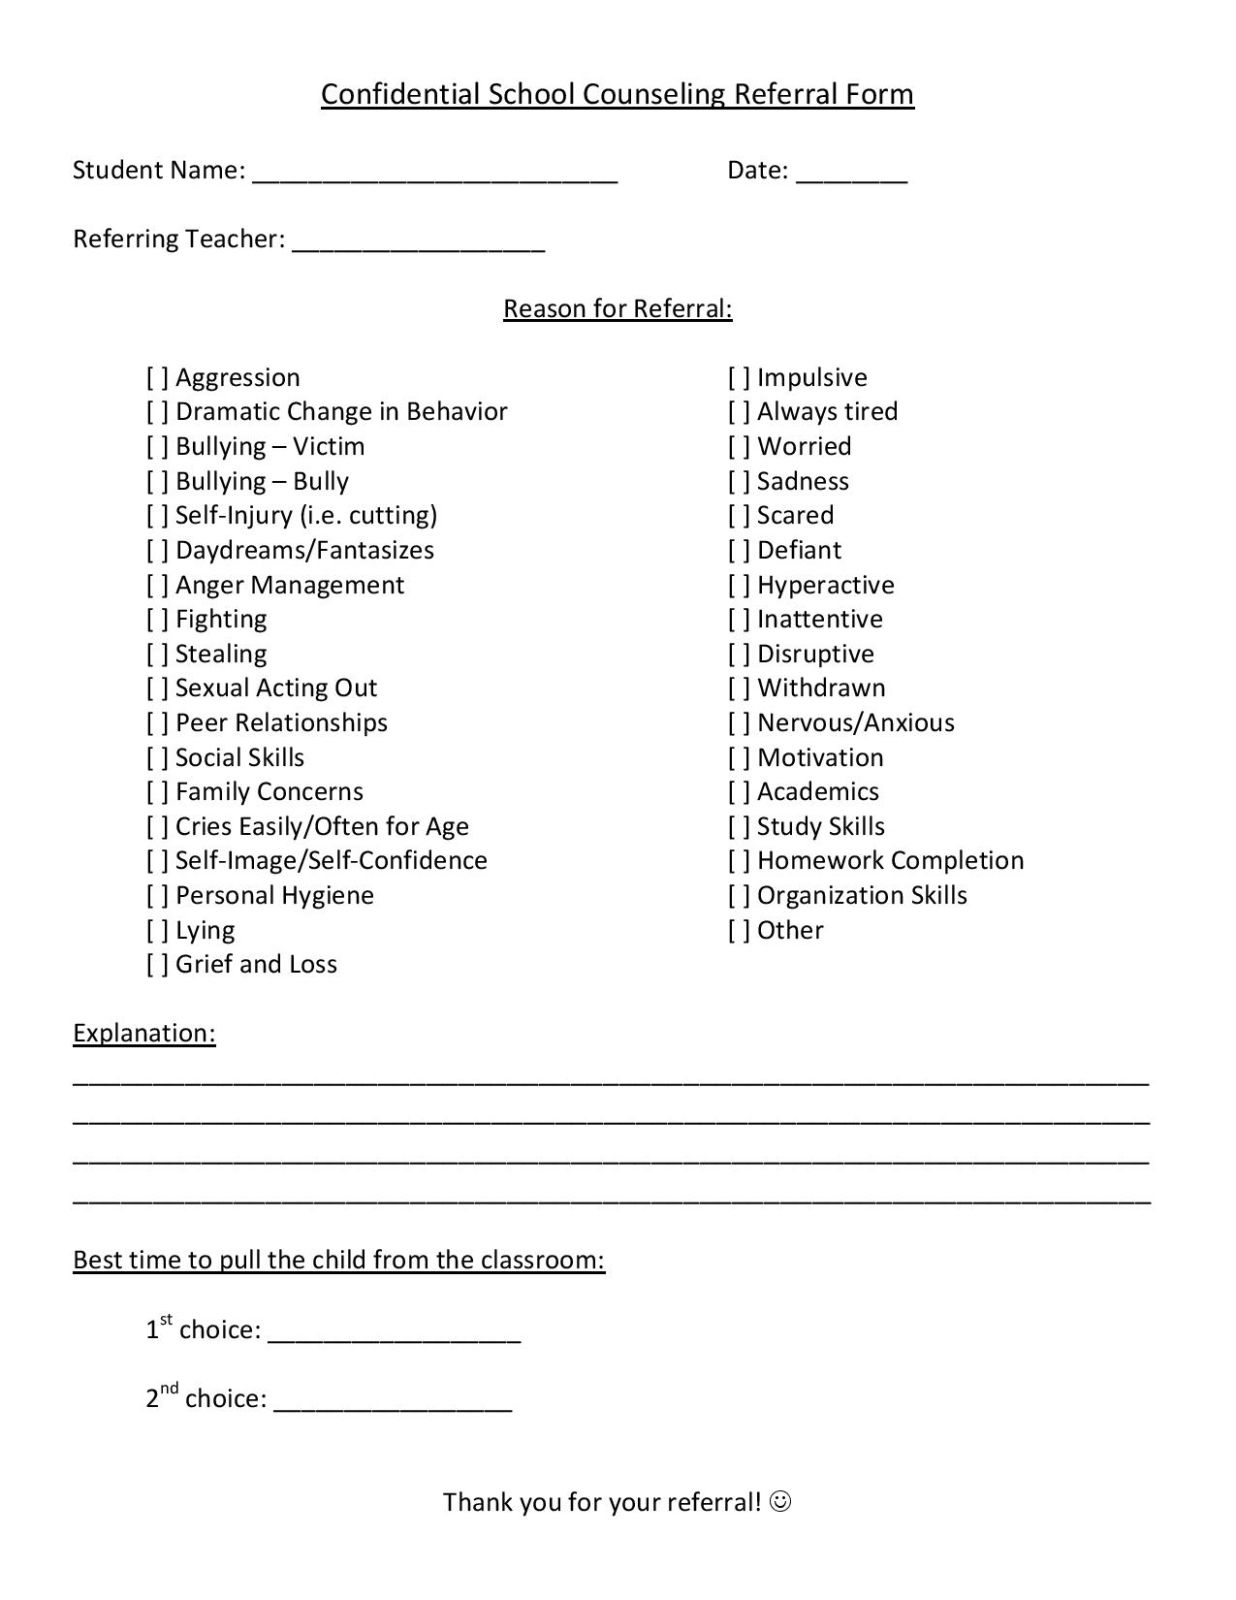 School Counseling Referral Form School Counseling School